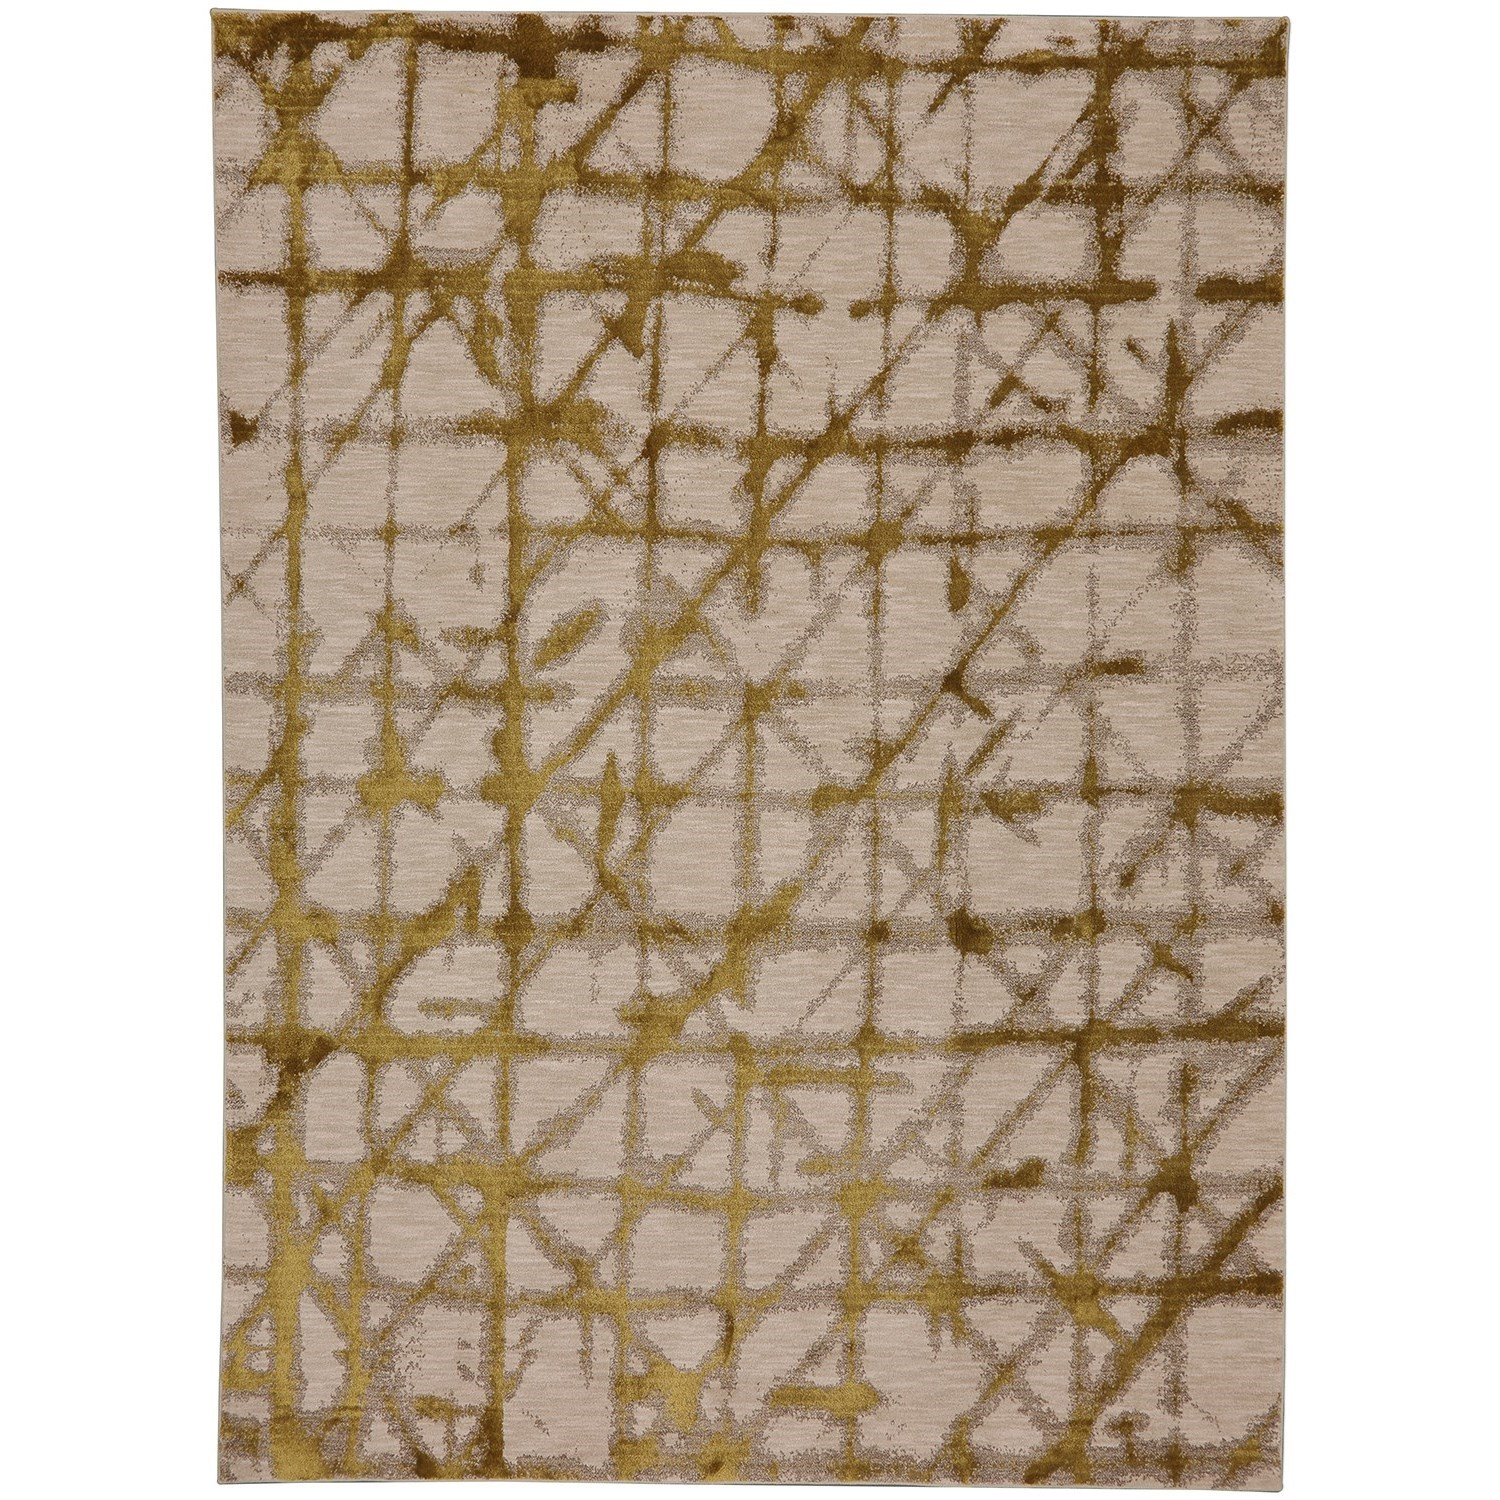 "9' 6""x12' 11"" Rectangle Geometric Area Rug"